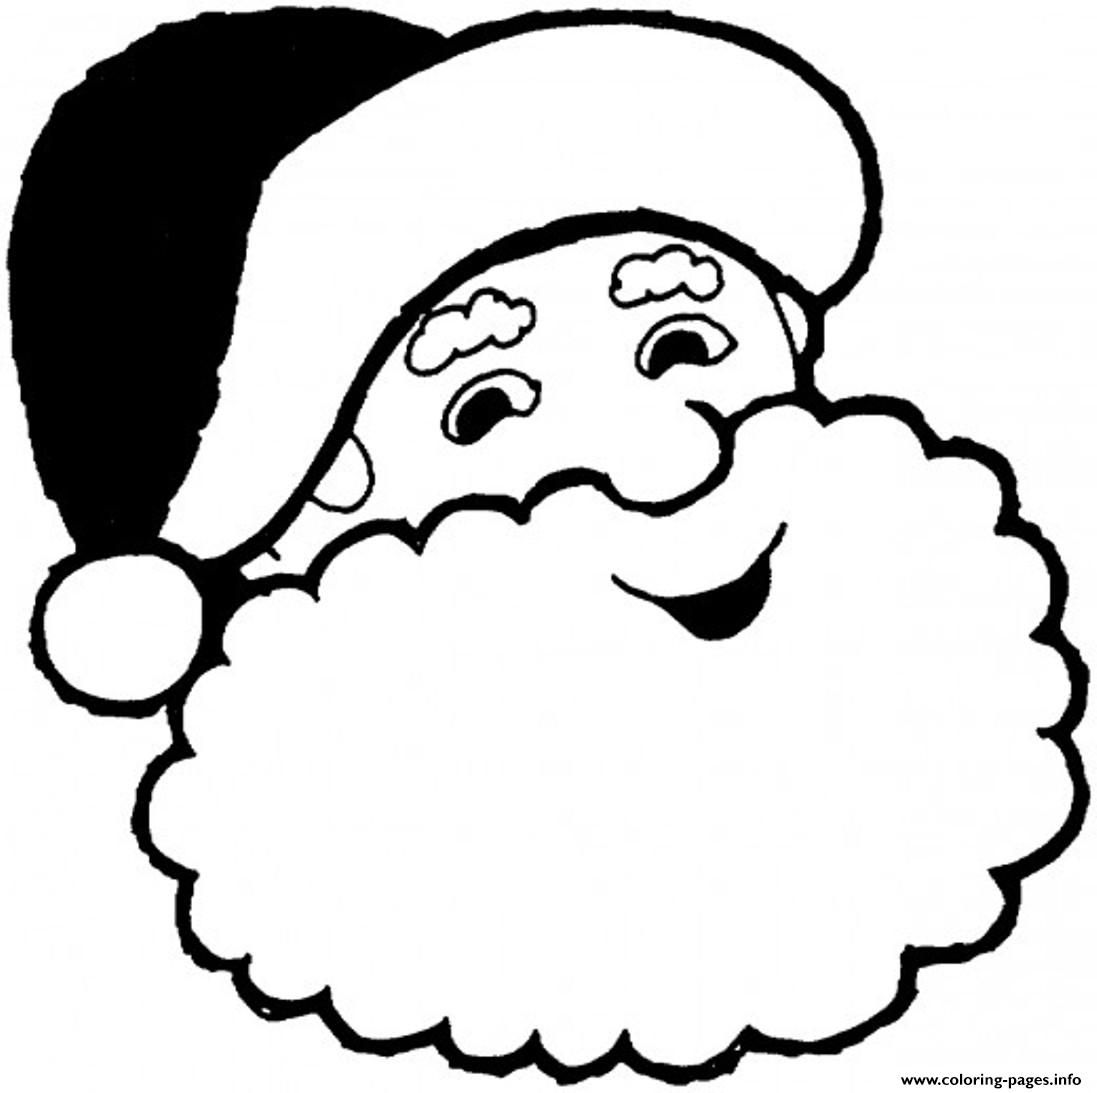 Print Smiling Santa Claus S78d7 Coloring Pages